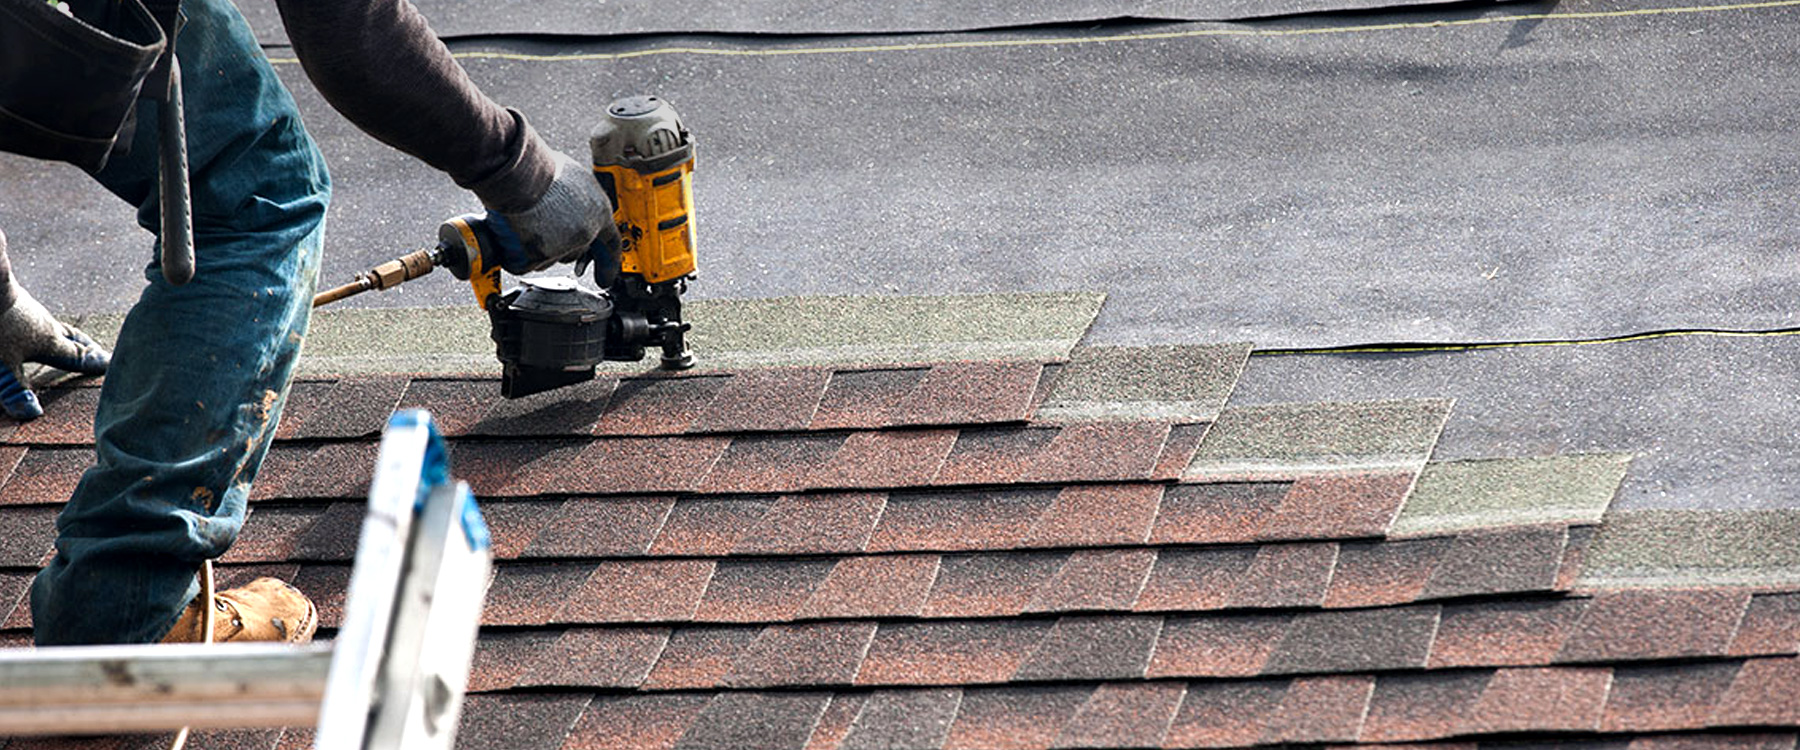 Roof Installation & Upgrade - Hire A Pro Or DIY?